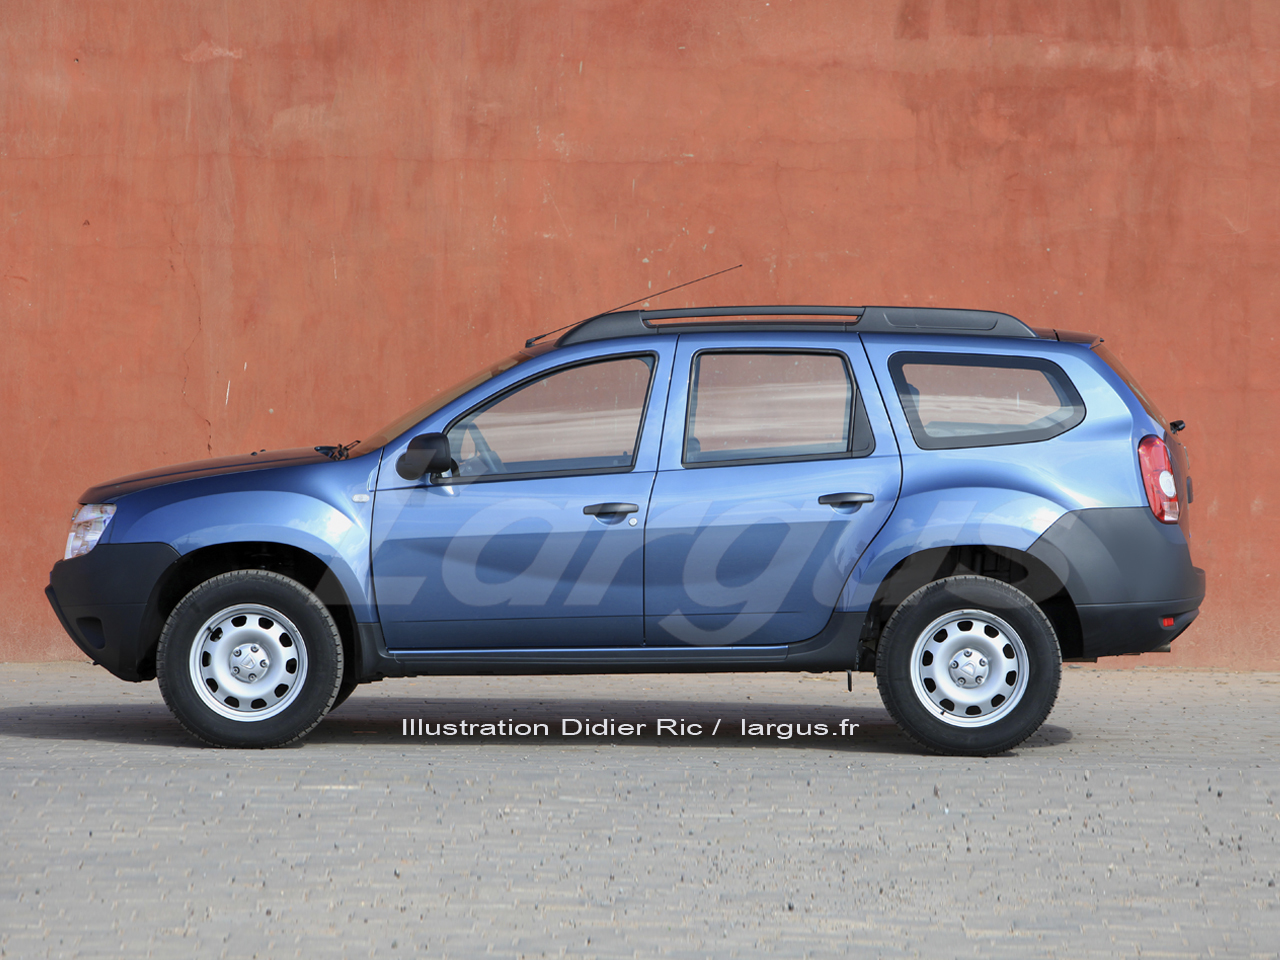 futur dacia duster 2017 une version 7 places photo 1 l 39 argus. Black Bedroom Furniture Sets. Home Design Ideas